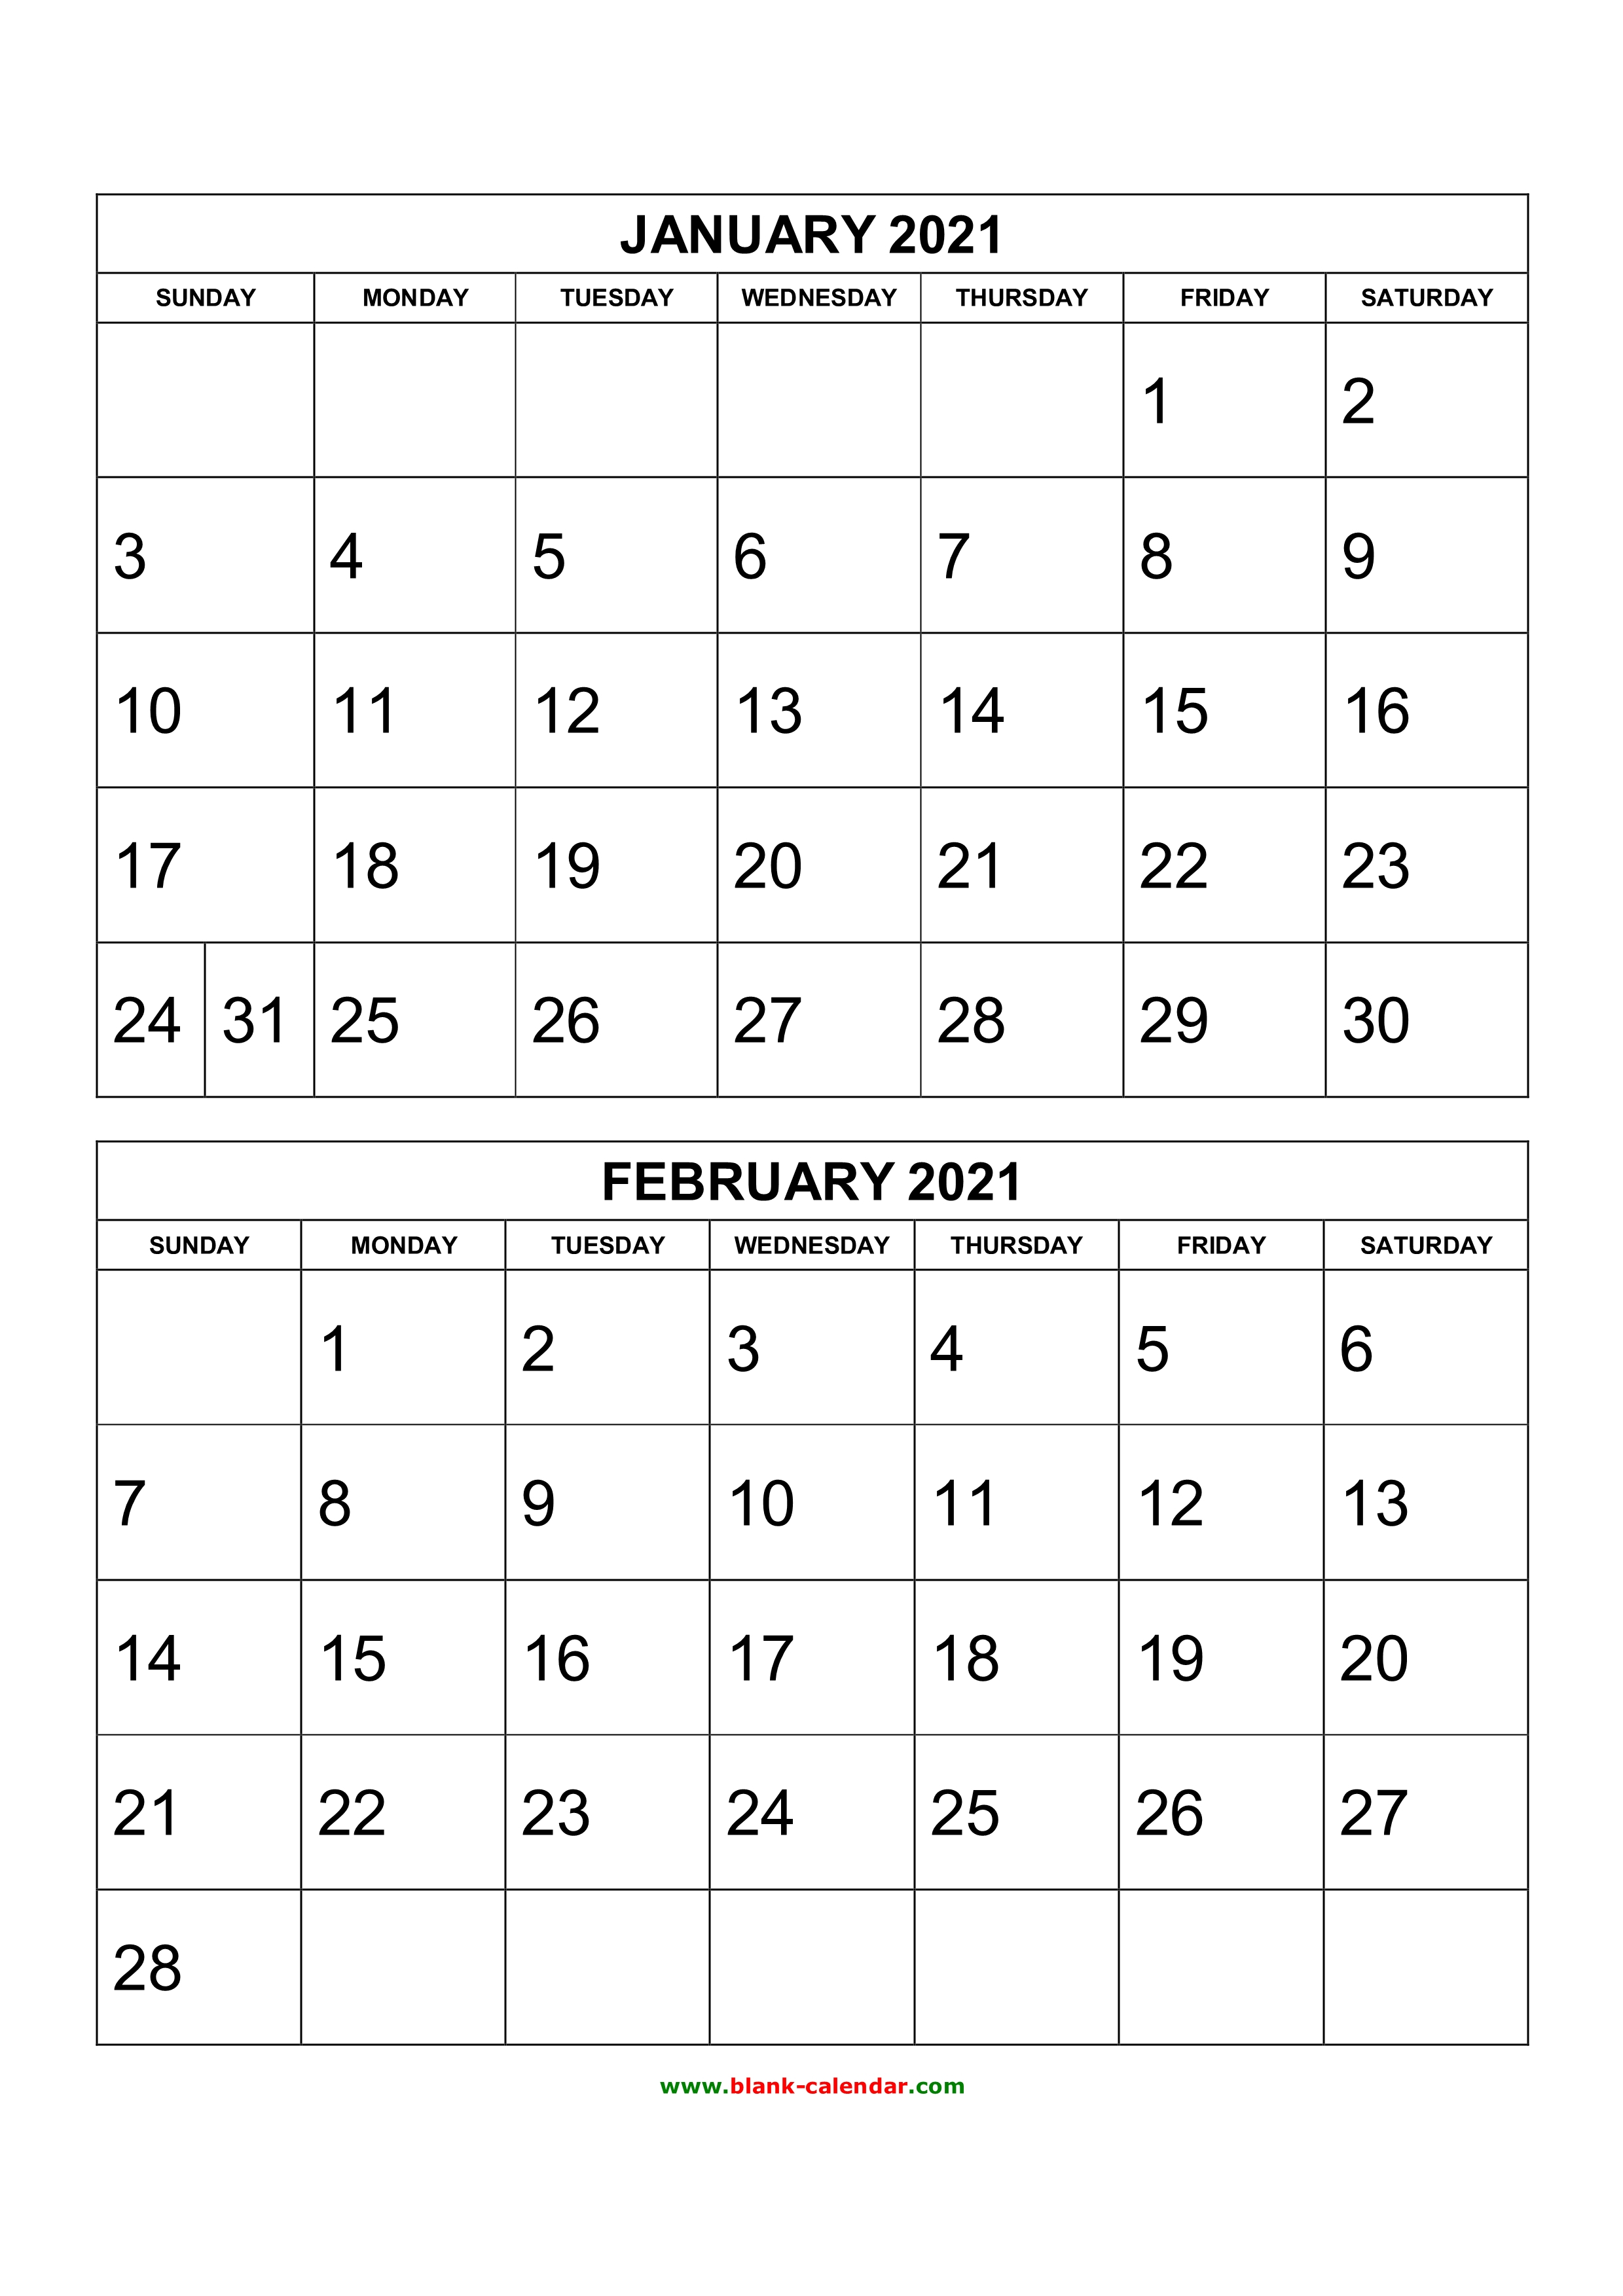 If you haven't done so already, it's time to update last year's custom photo calendar. Free Printable 2020 Two Months Per Page Calendars ...